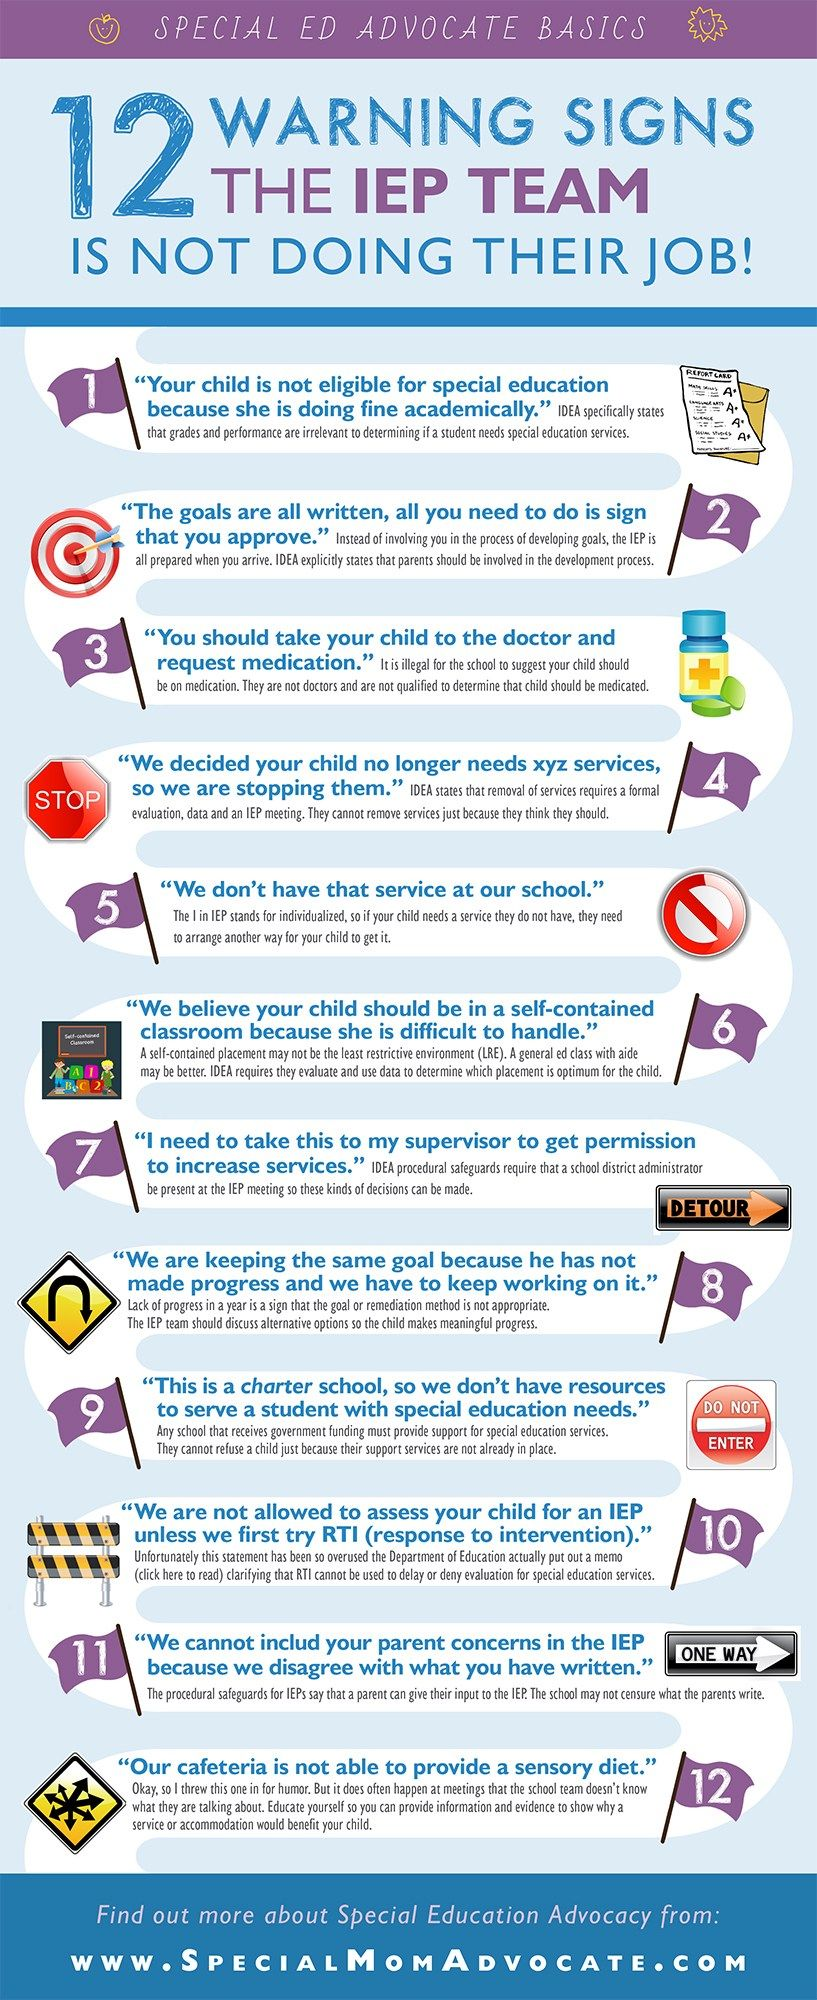 12 Warning Signs Iep Team Is Not Doing >> 12 Warning Signs The Iep Team Is Not Doing Their Job By Making